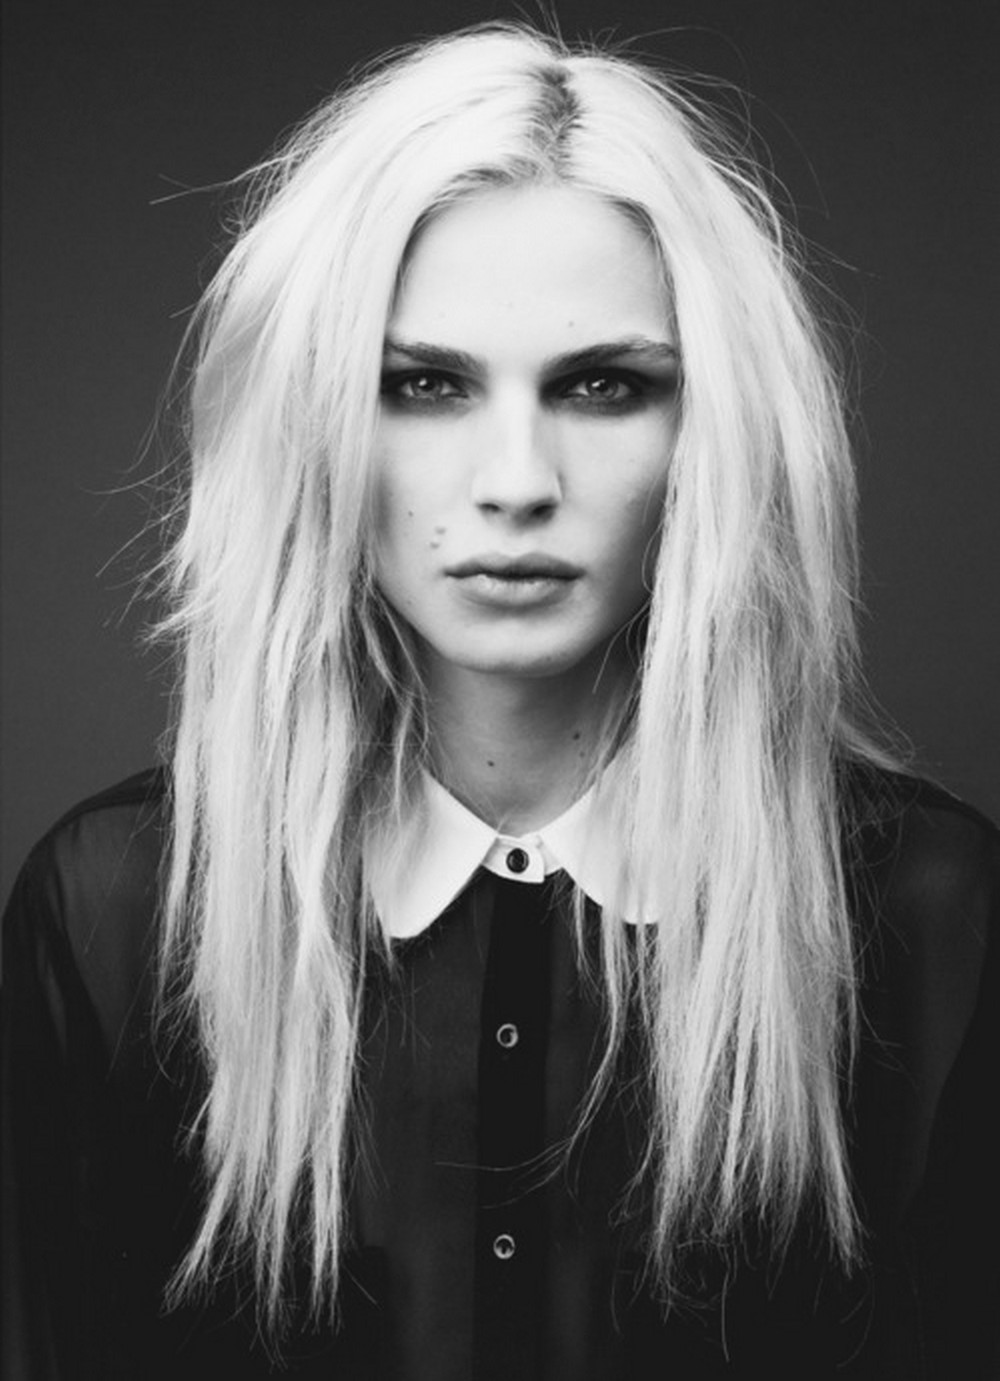 The beautiful Andreja Pejic